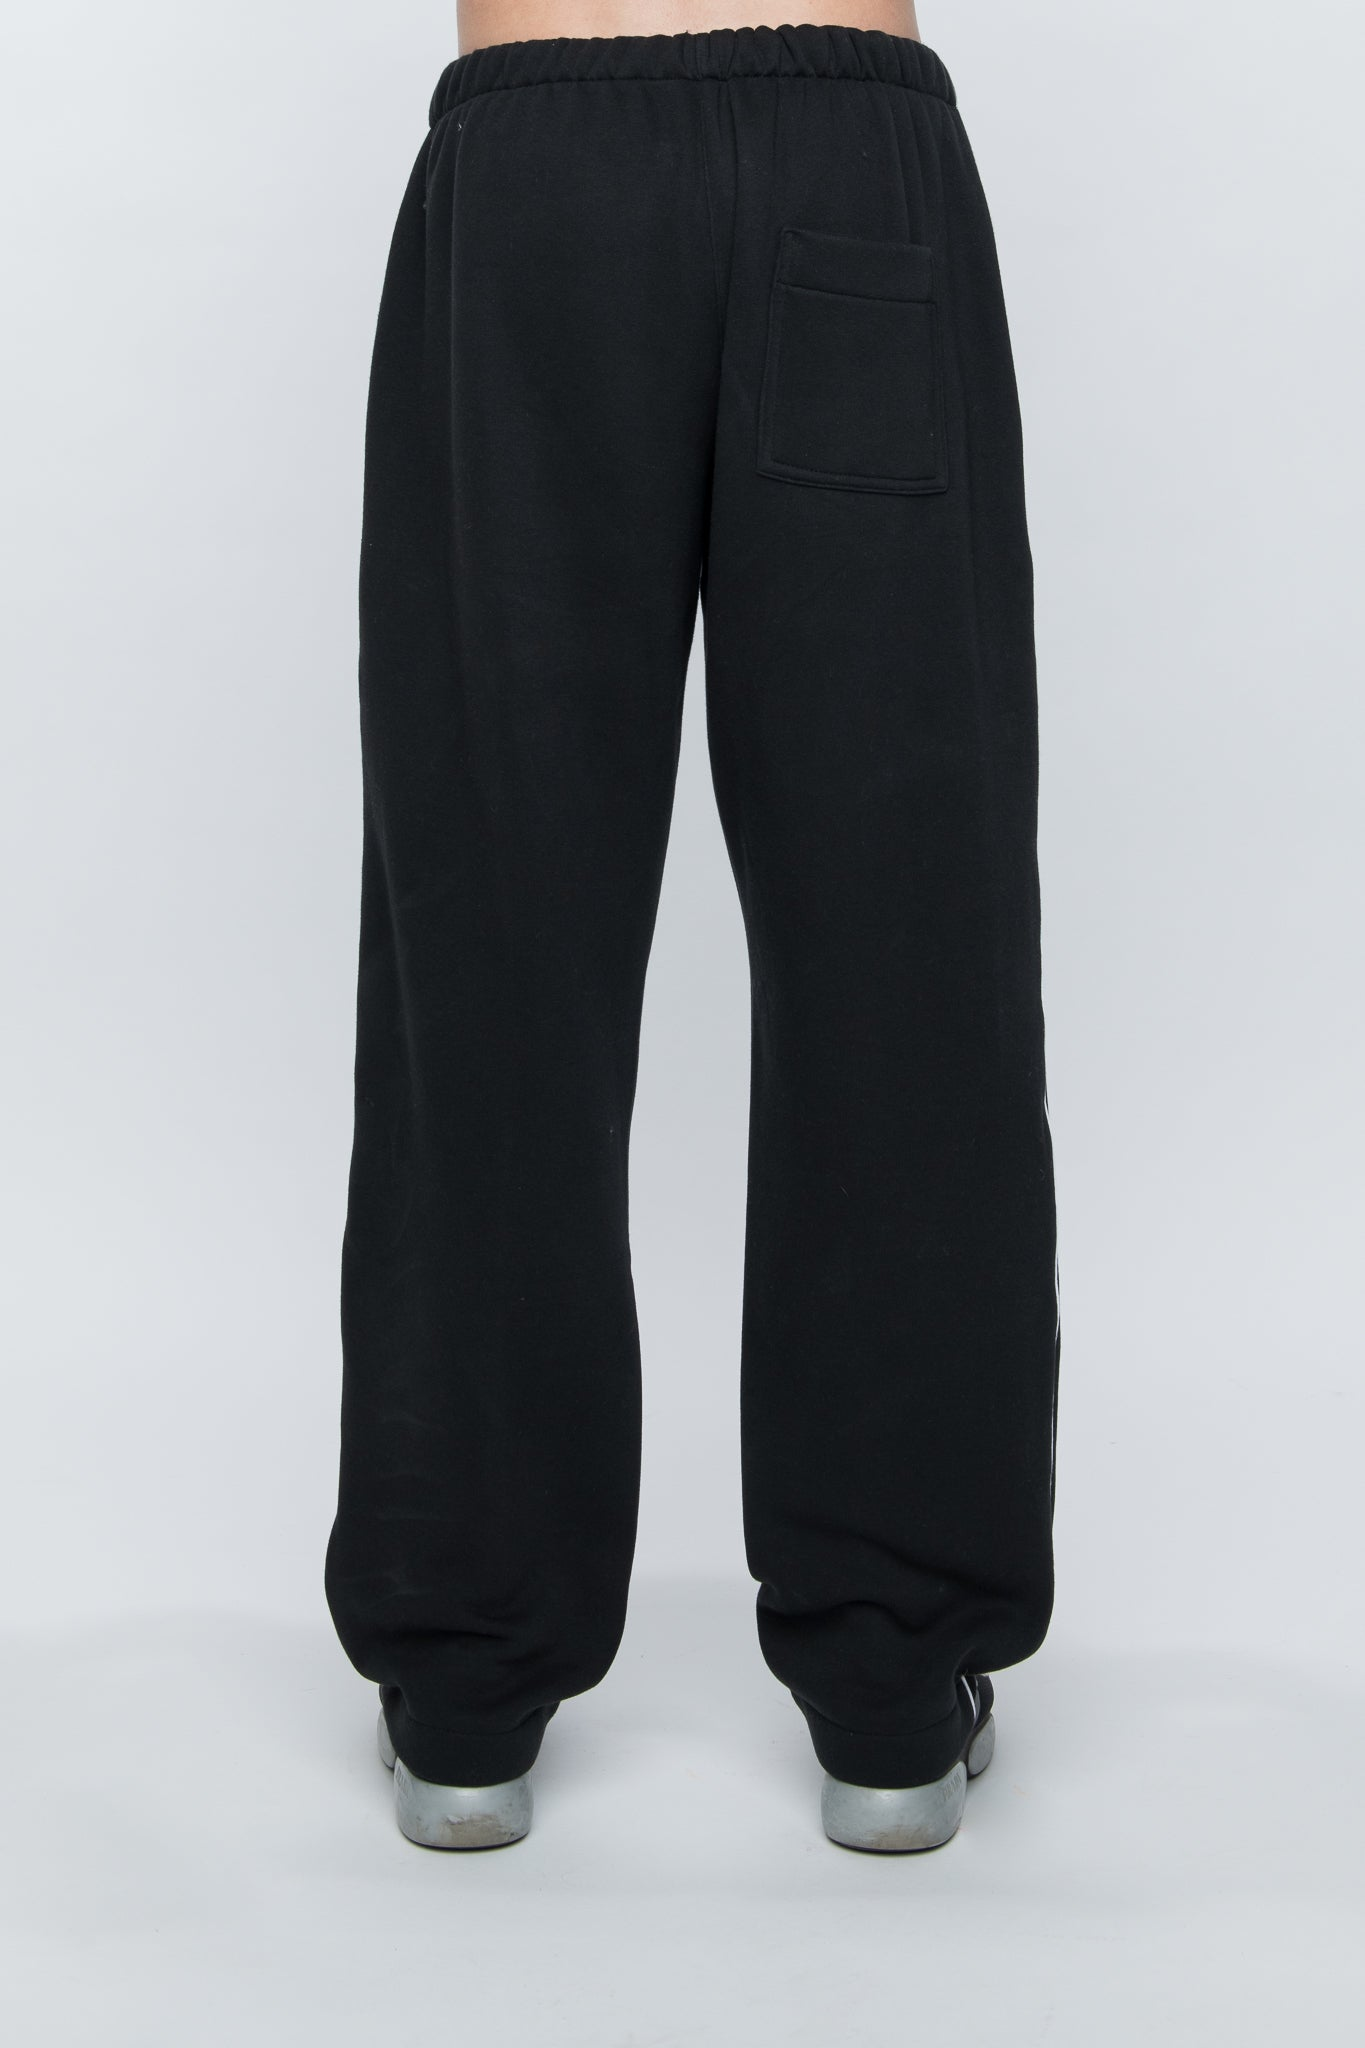 Sweatpants loose black